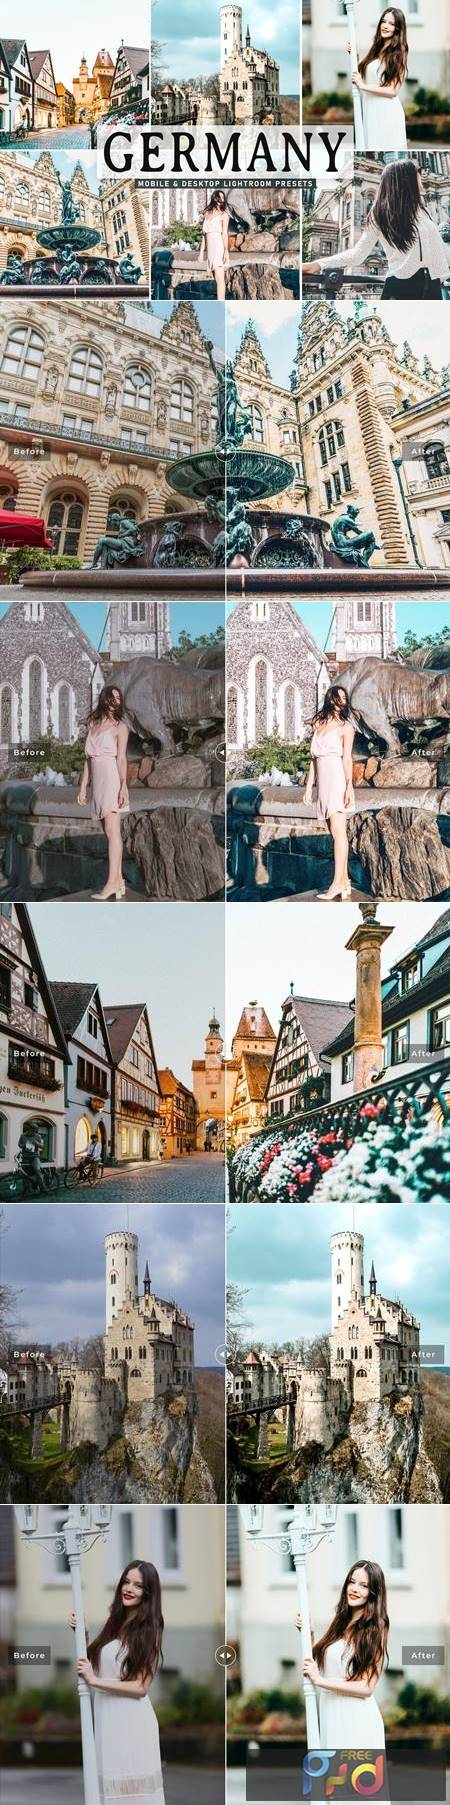 Germany Mobile & Desktop Lightroom Presets RYQAXNV 1